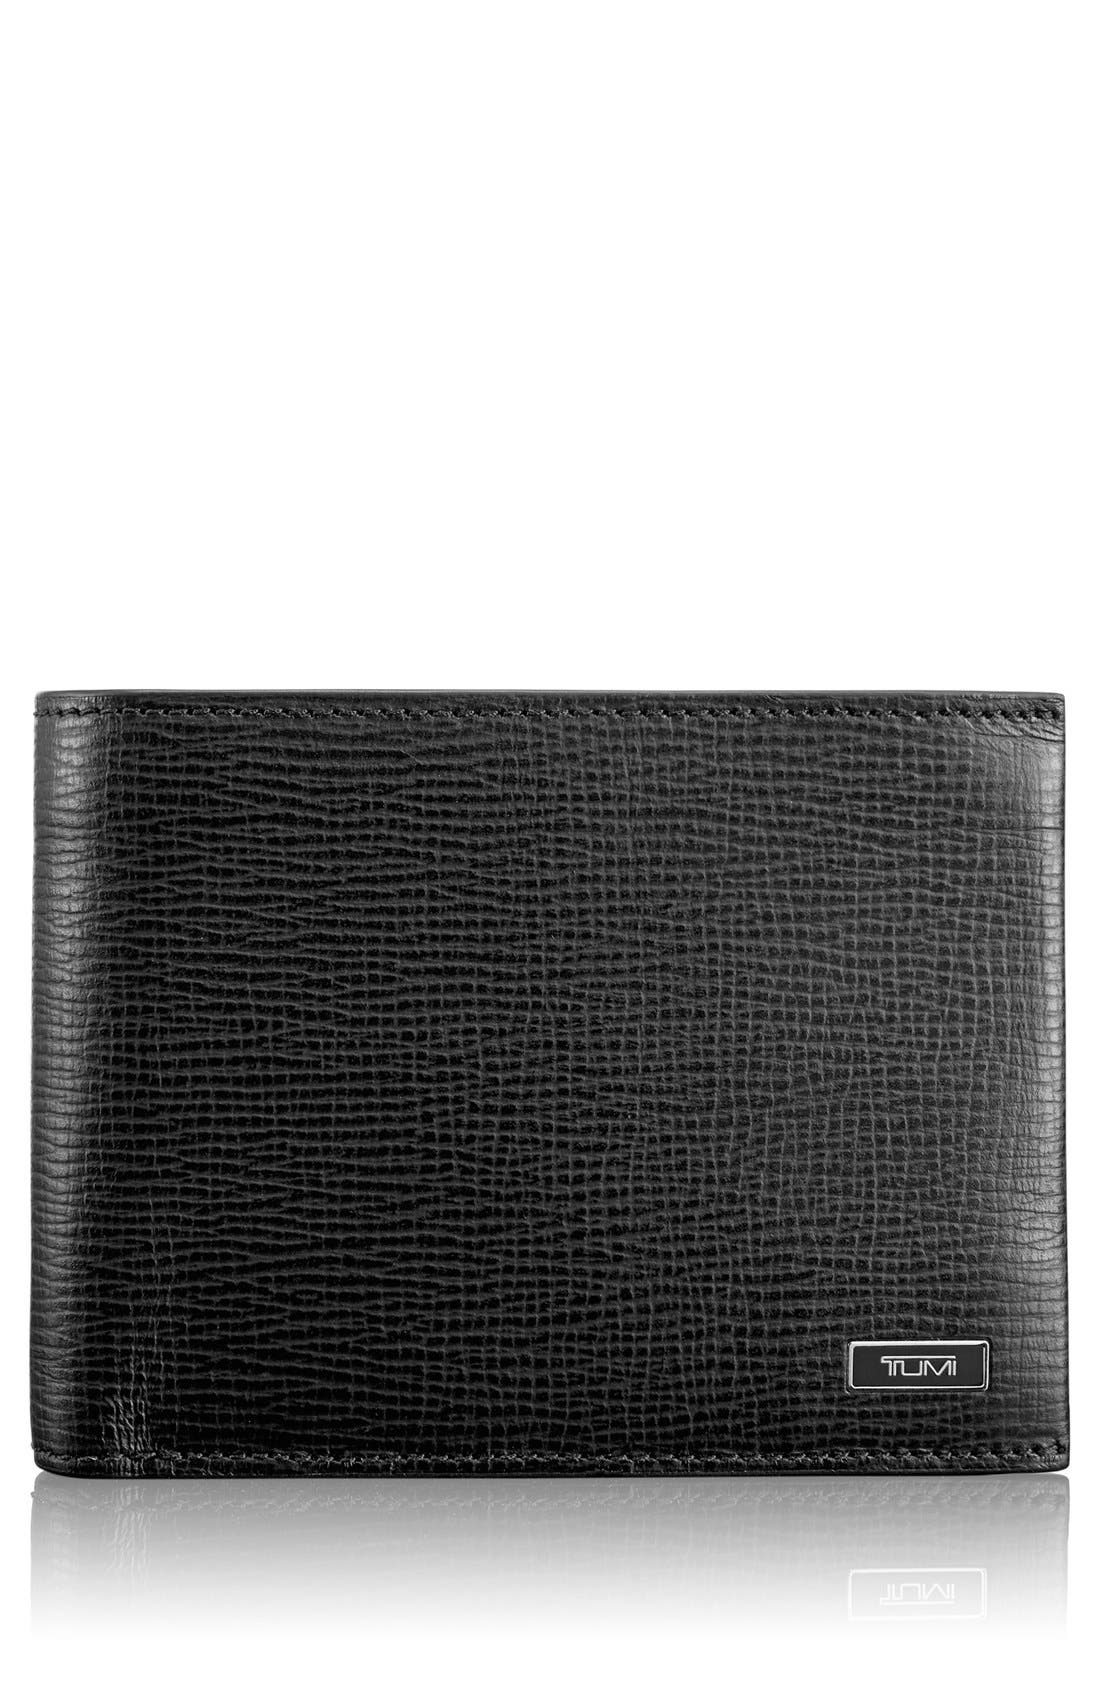 Monaco Global Leather Wallet with Coin Pocket,                             Main thumbnail 1, color,                             BLACK